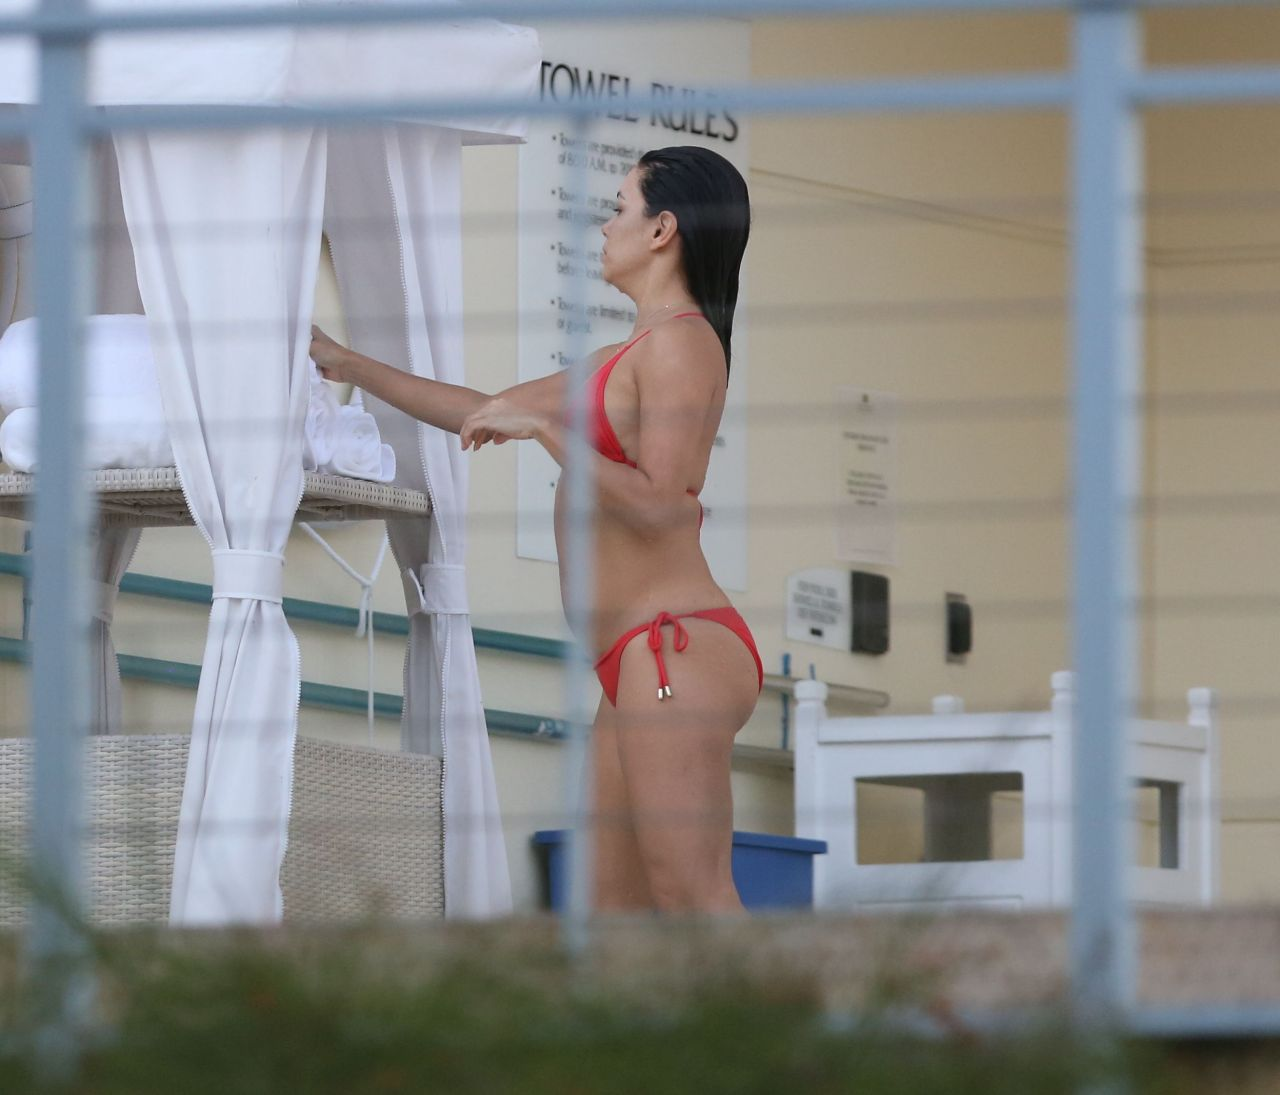 Eva Longoria in a Red Bikini at a Pool in Miami - November 2014